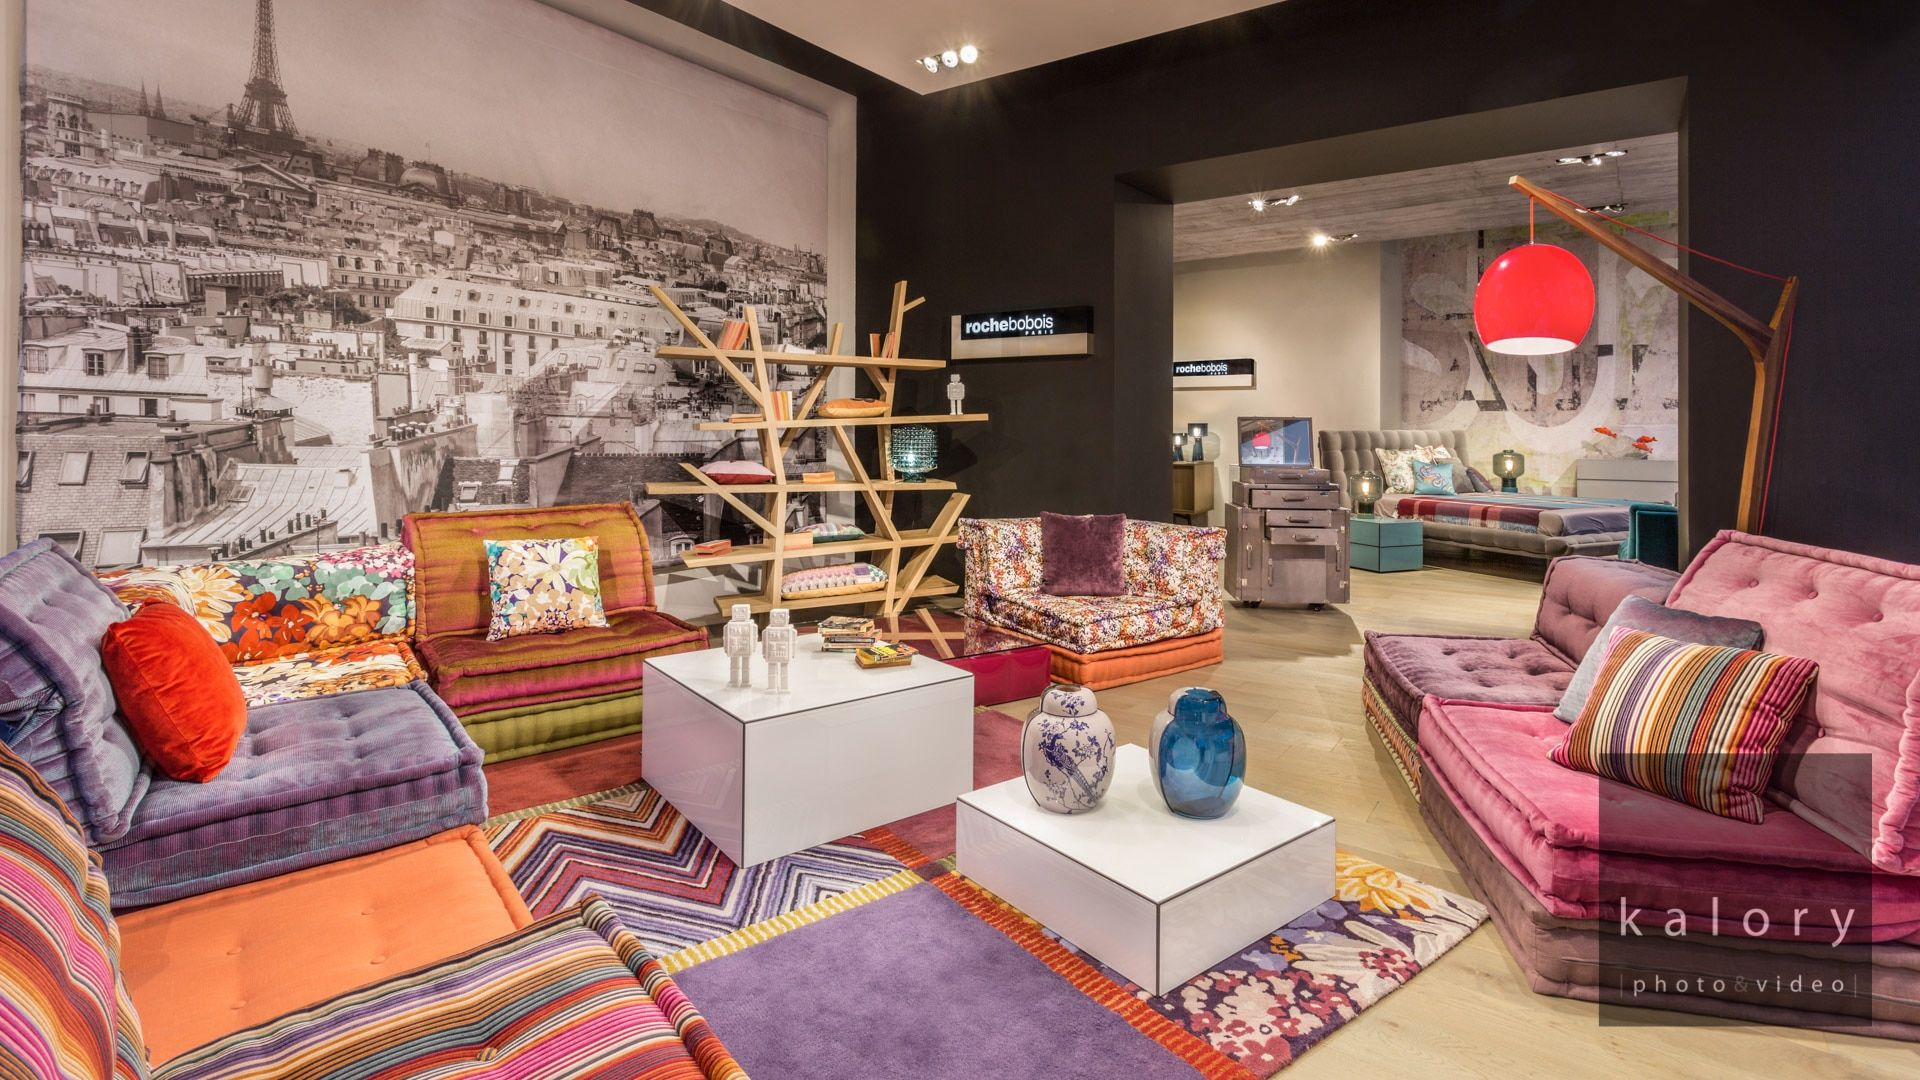 19 images of interiors and storefronts styled and photographed for furniture - Collection roche bobois 2015 ...